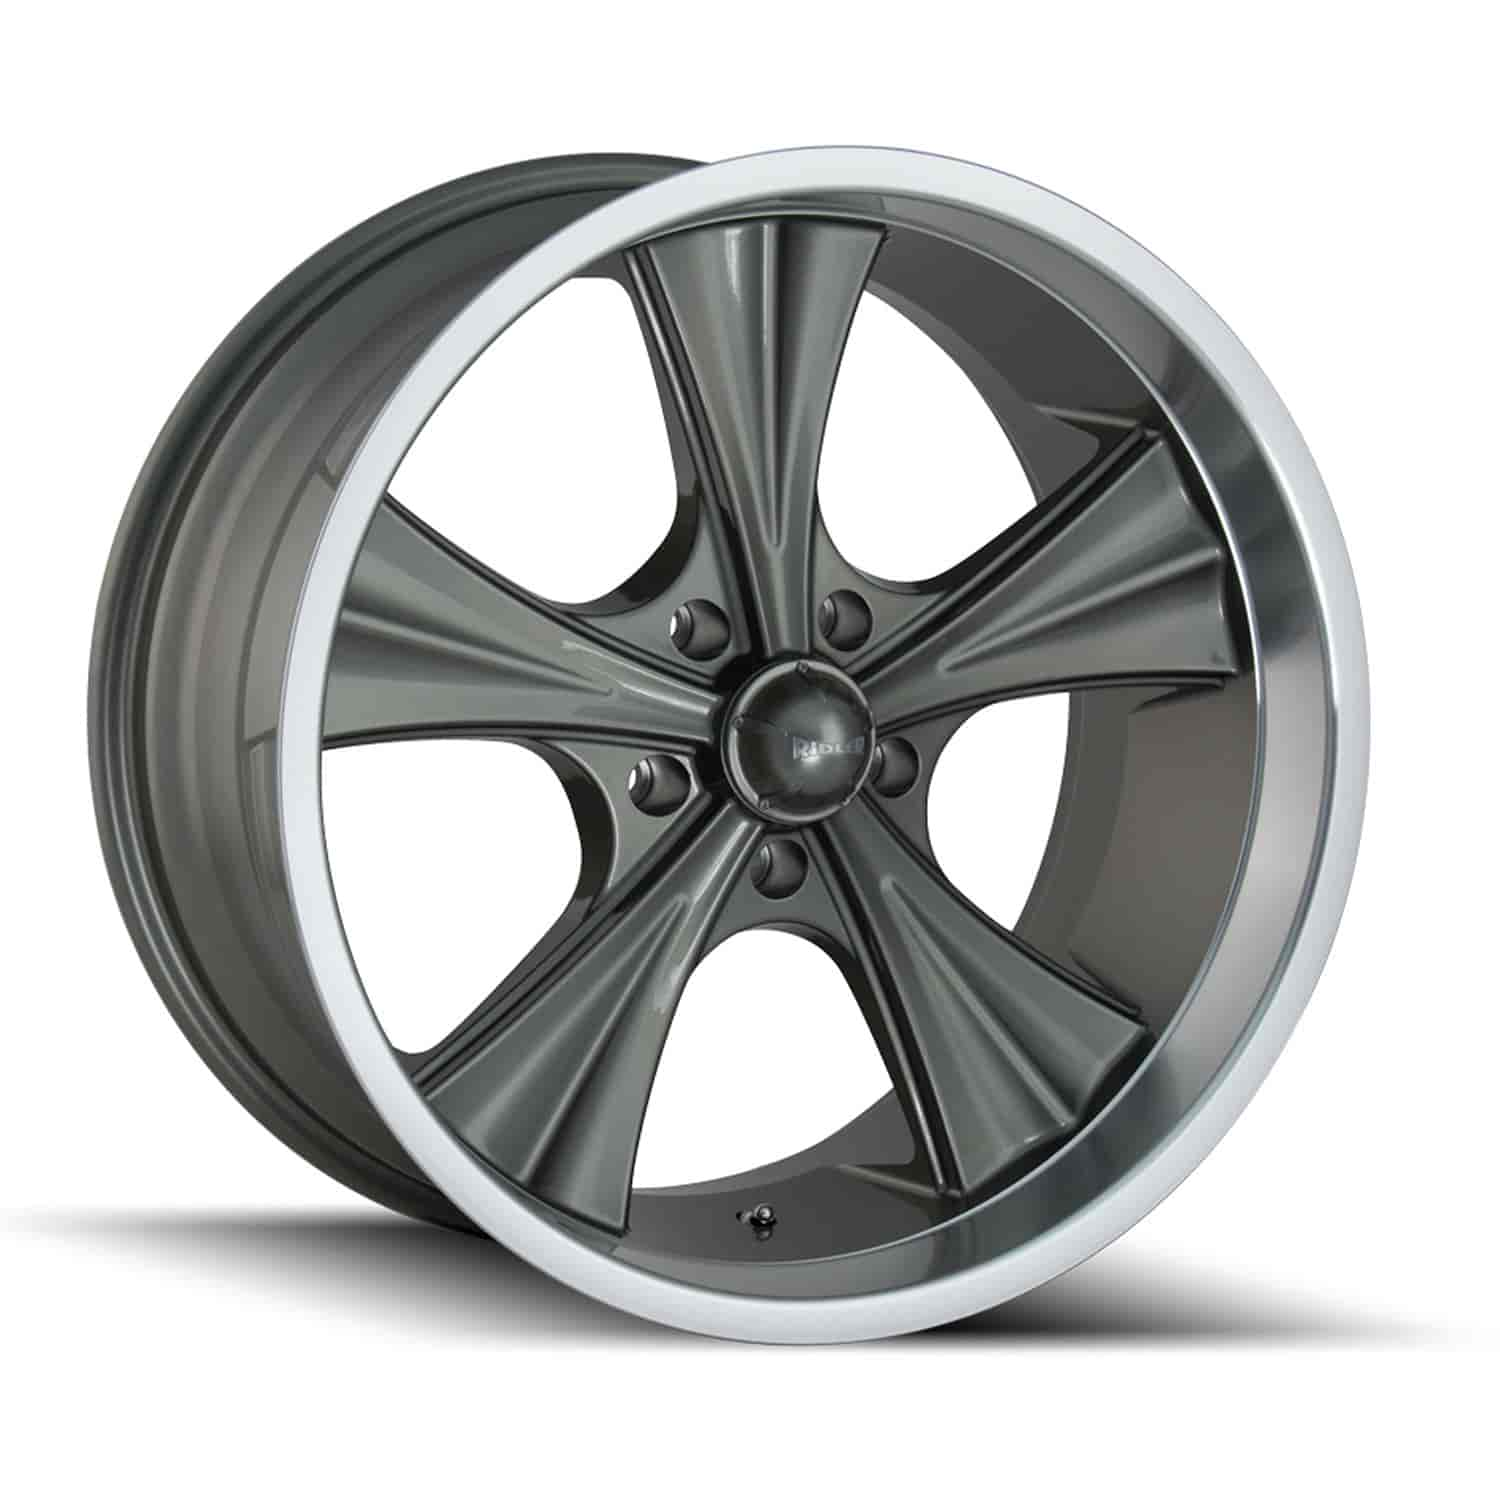 The Wheel Group 651-22965G35